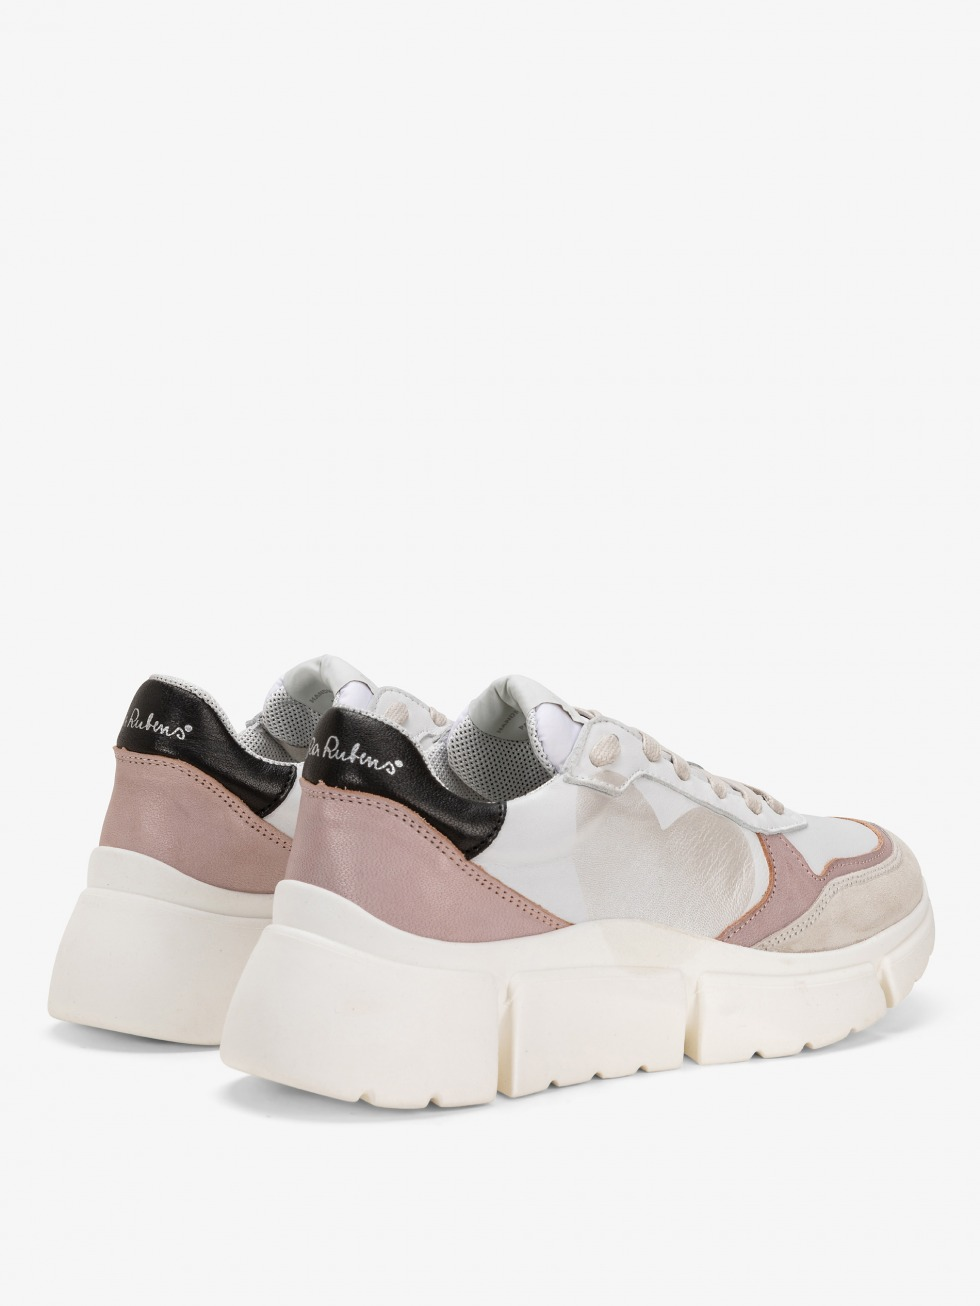 Stinger Chunky Nude Sneakers - Heart